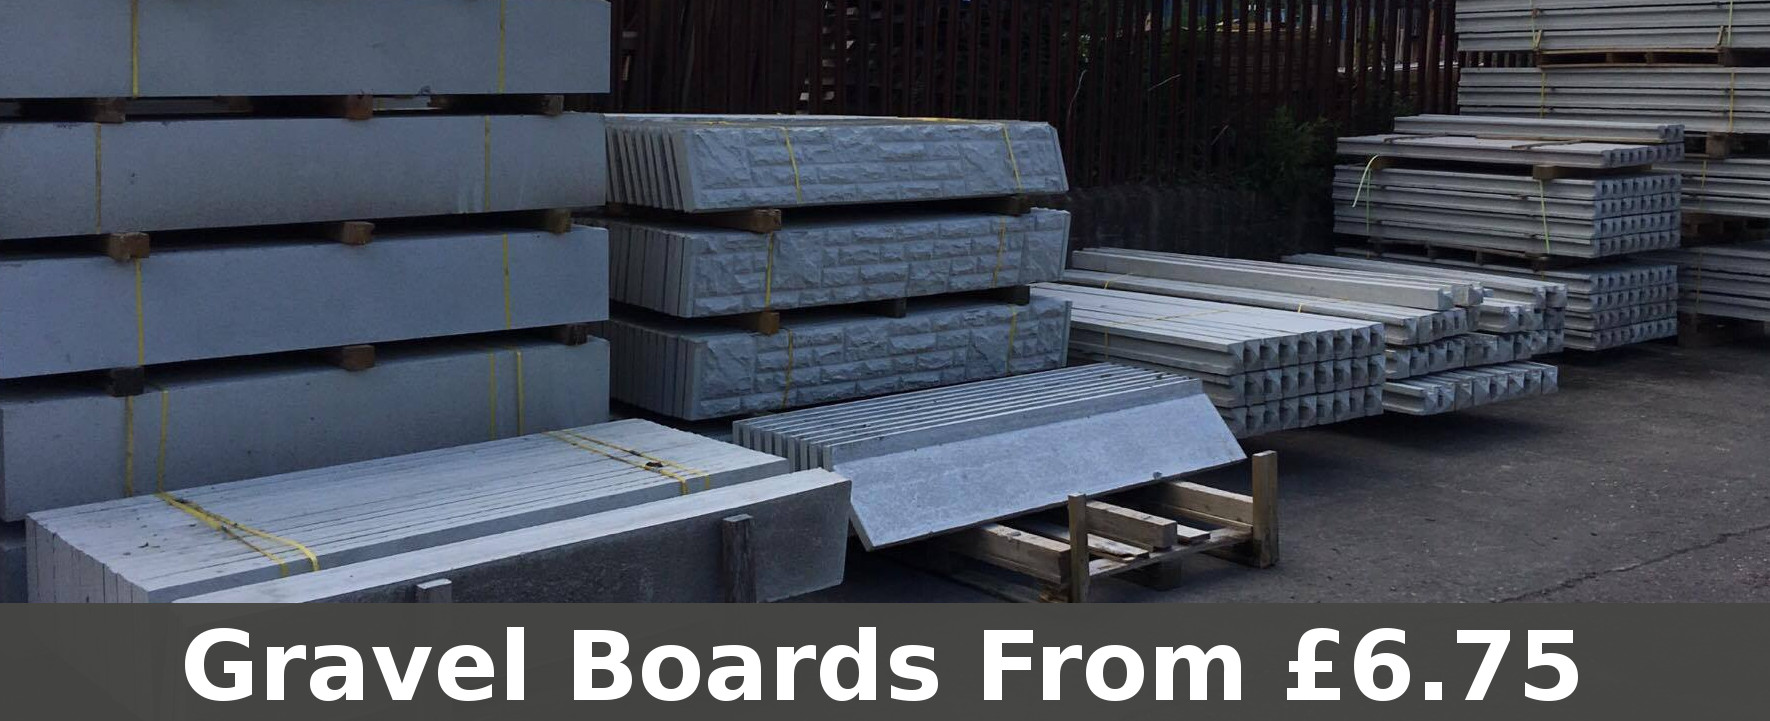 Gravel boards with LOW prices!